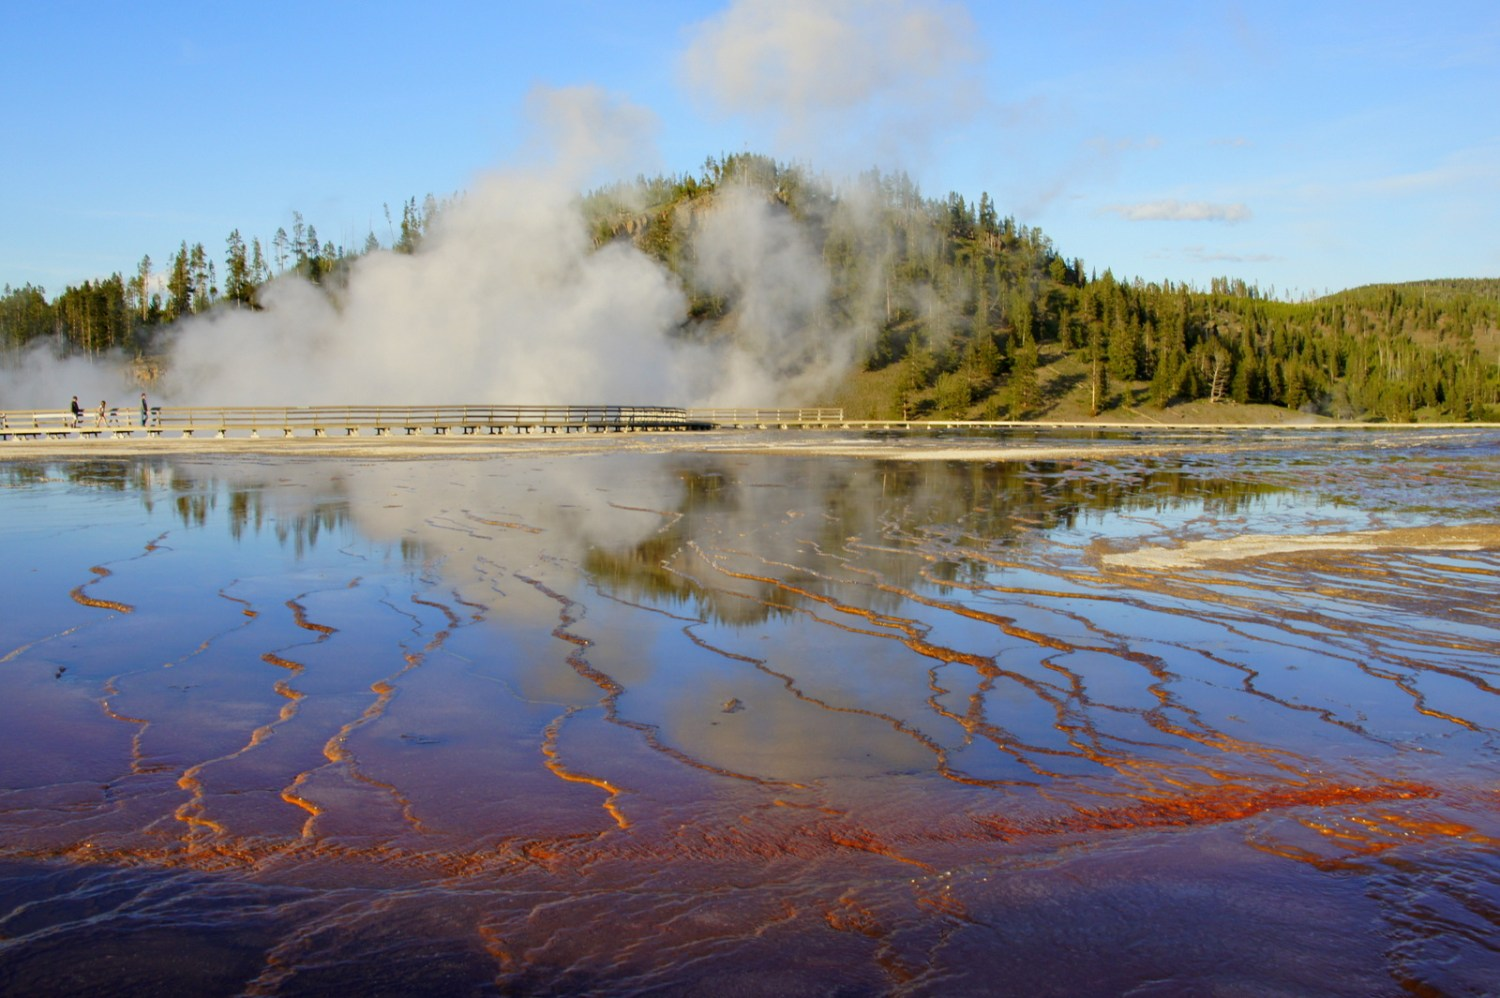 Algae brighten up a geyser pool in Yellowstone.